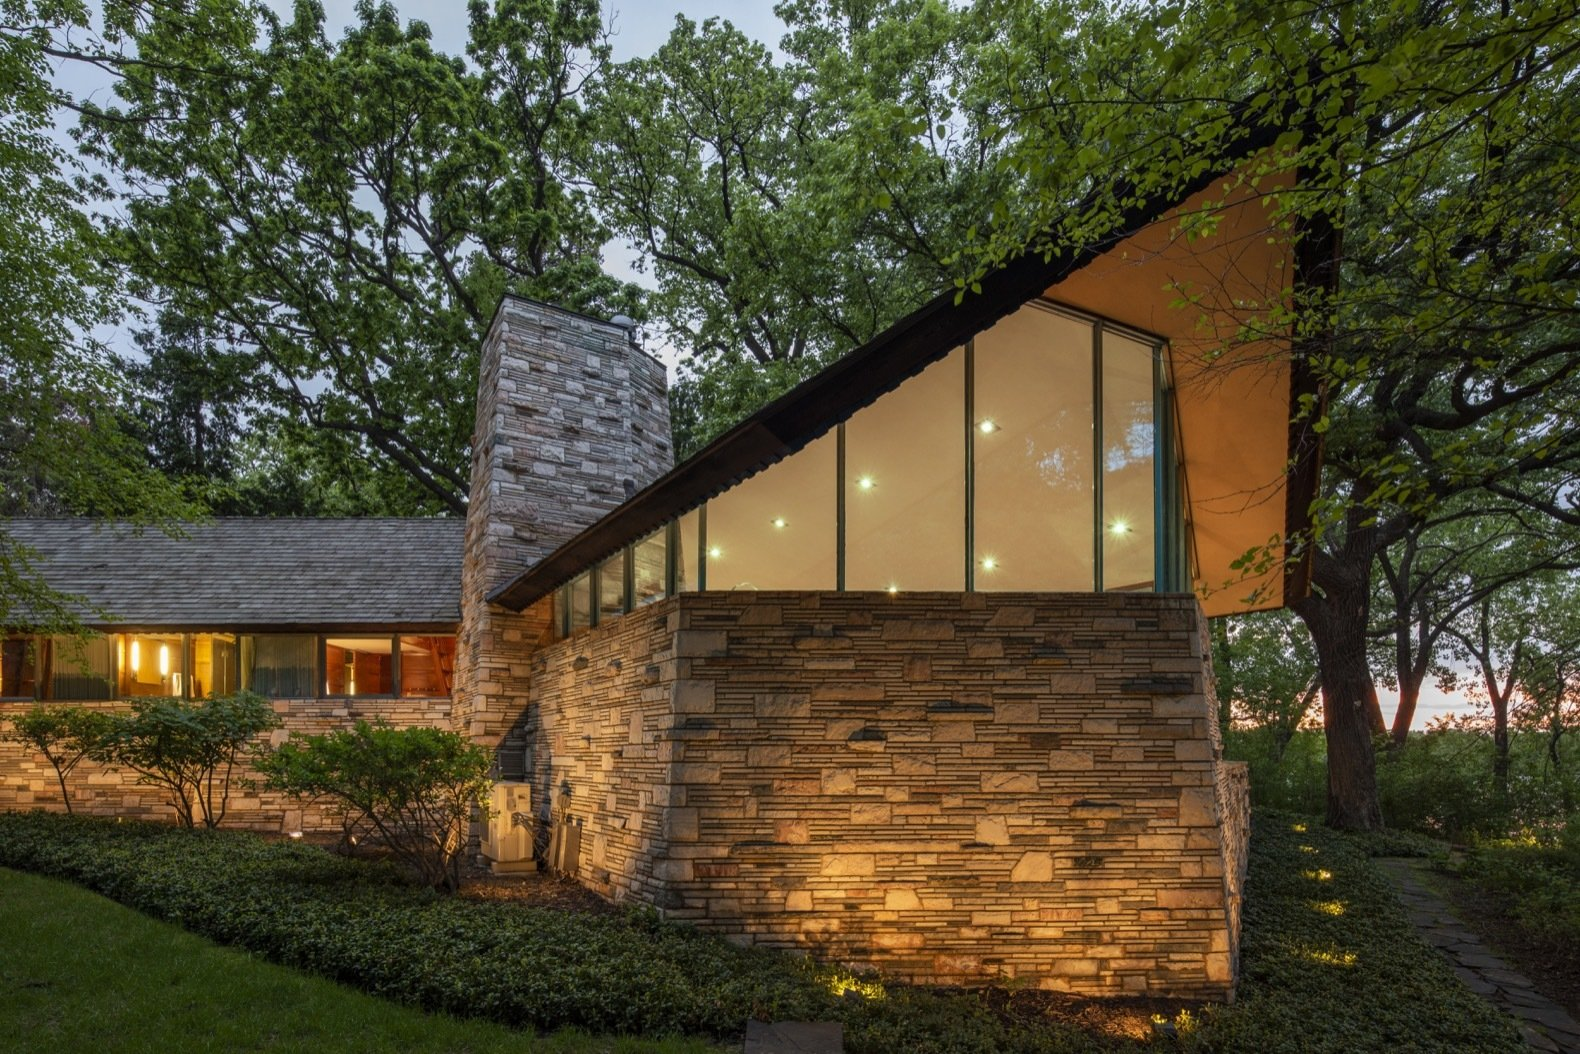 A Frank Lloyd Wright Home With Unusual Materials The Market At 3 4m